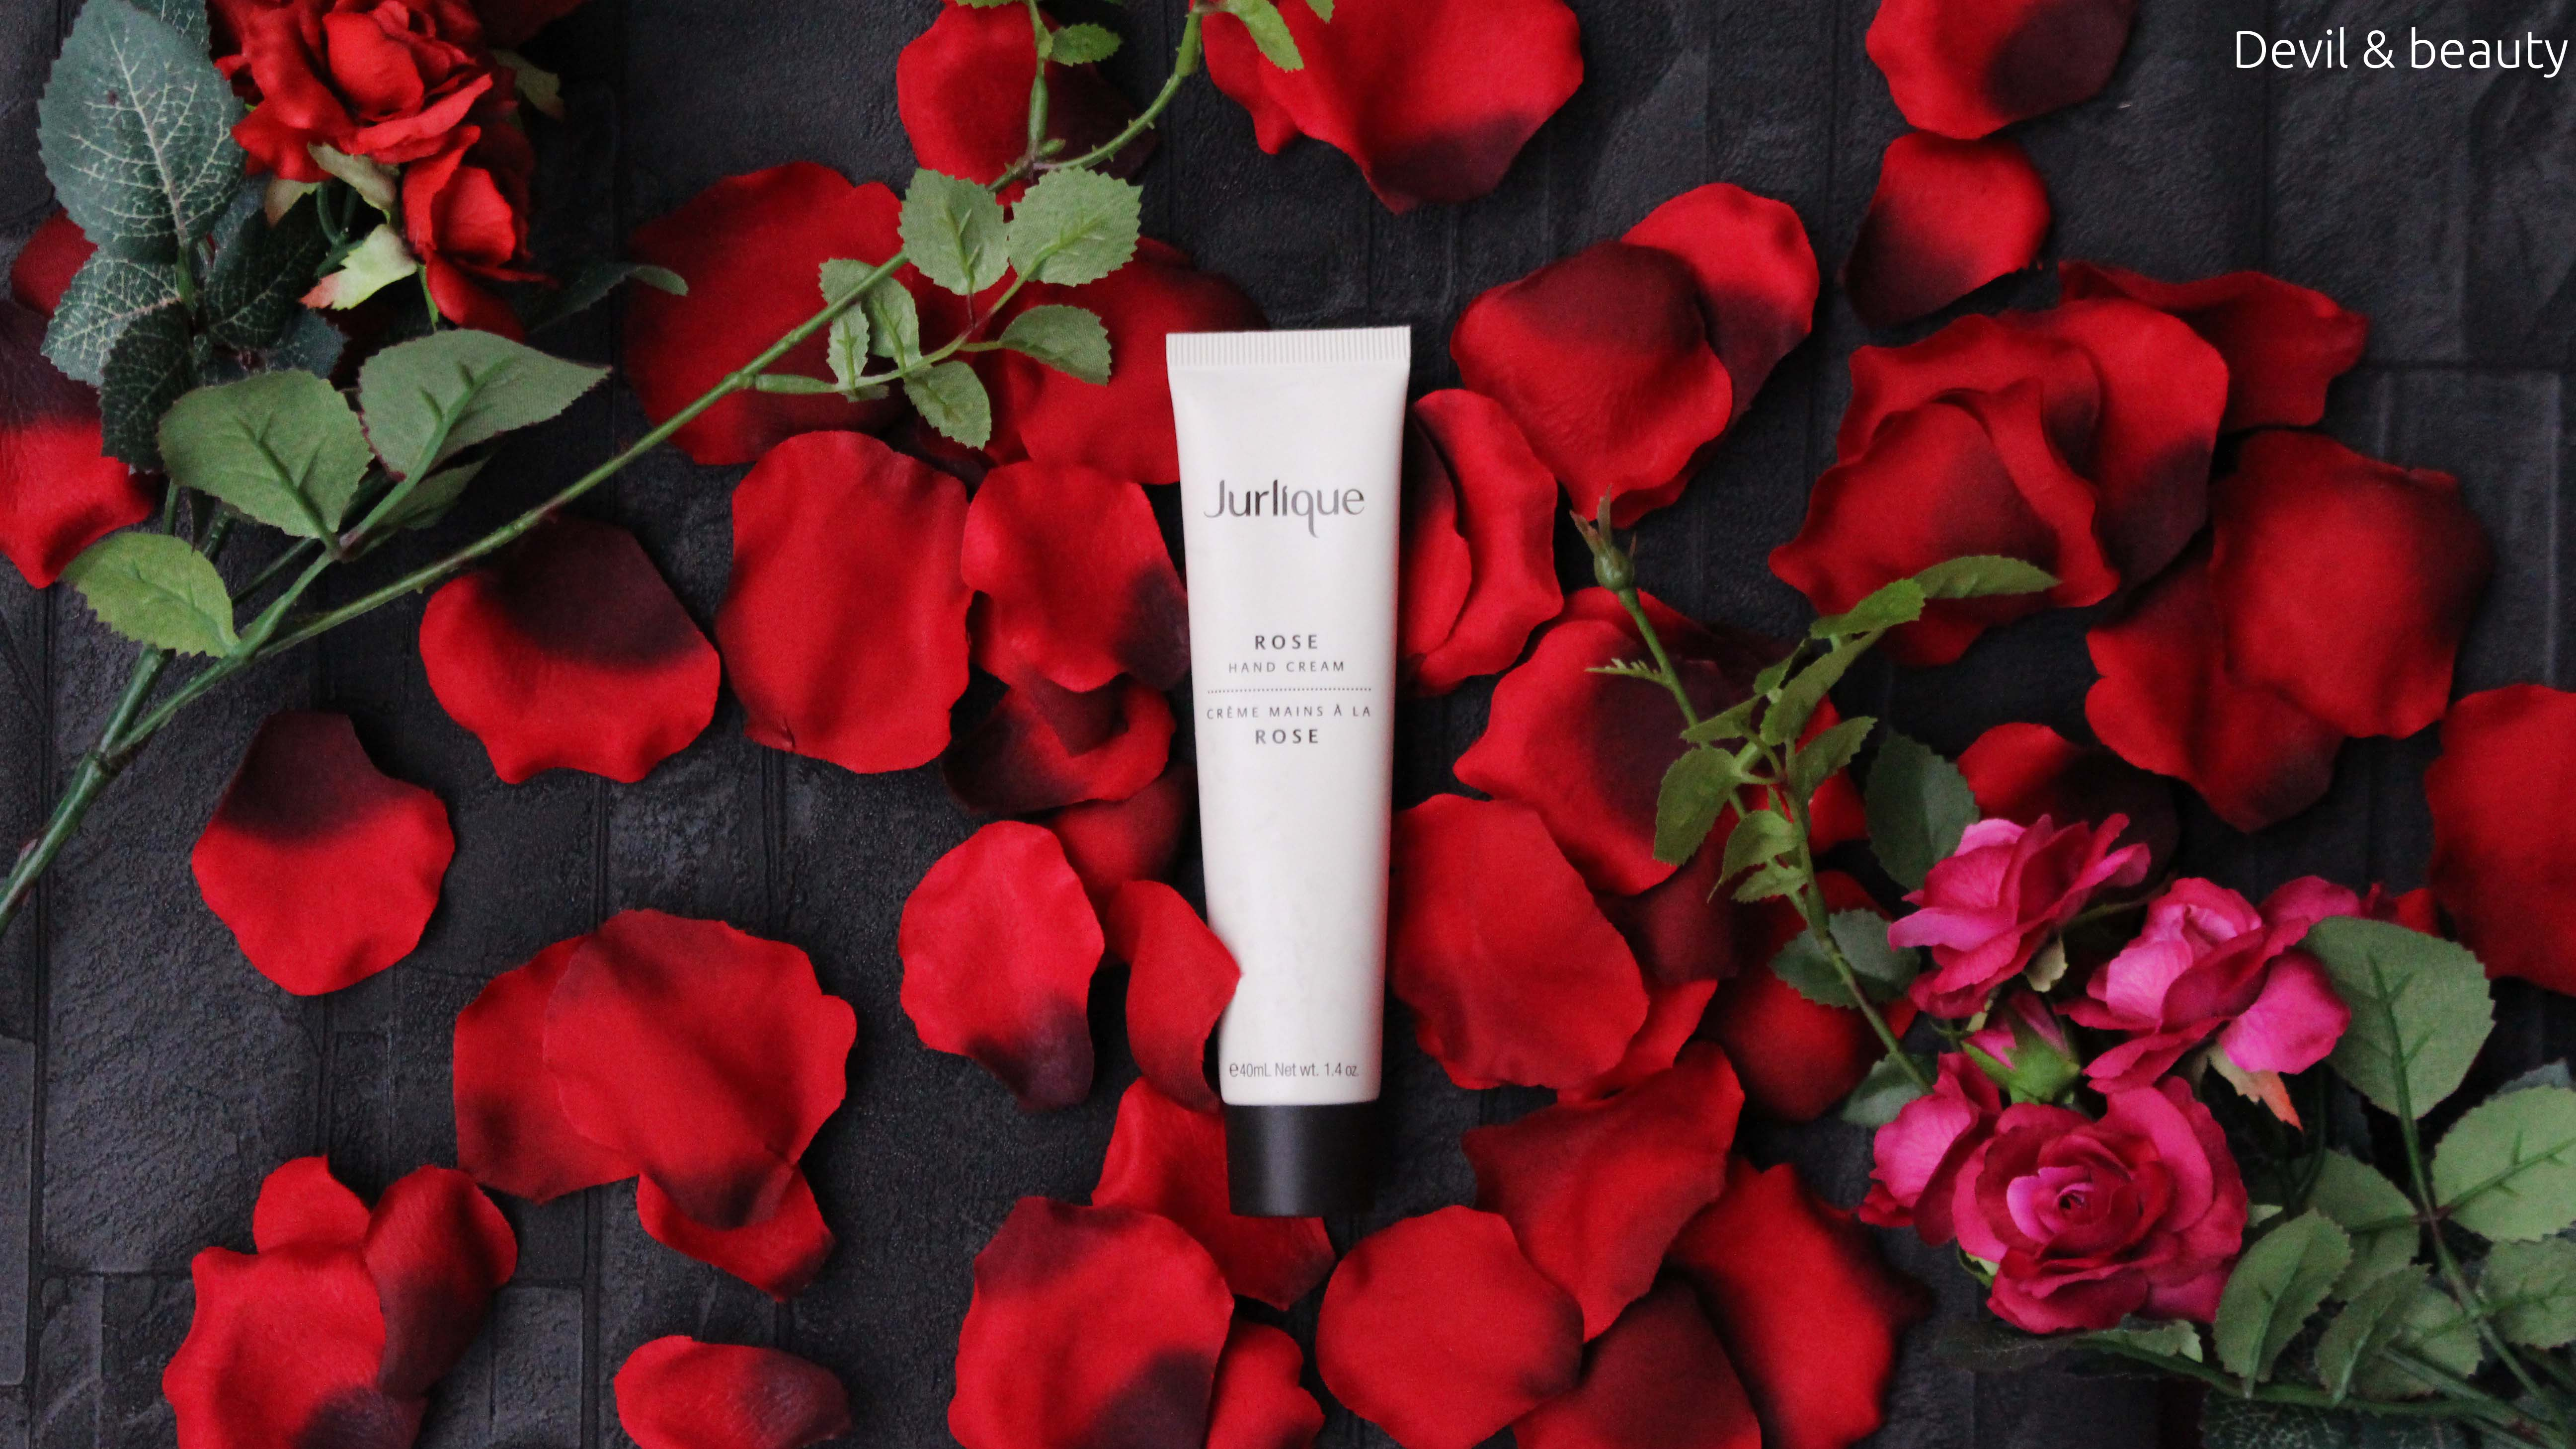 jurlique-rose-hand-cream13 - image